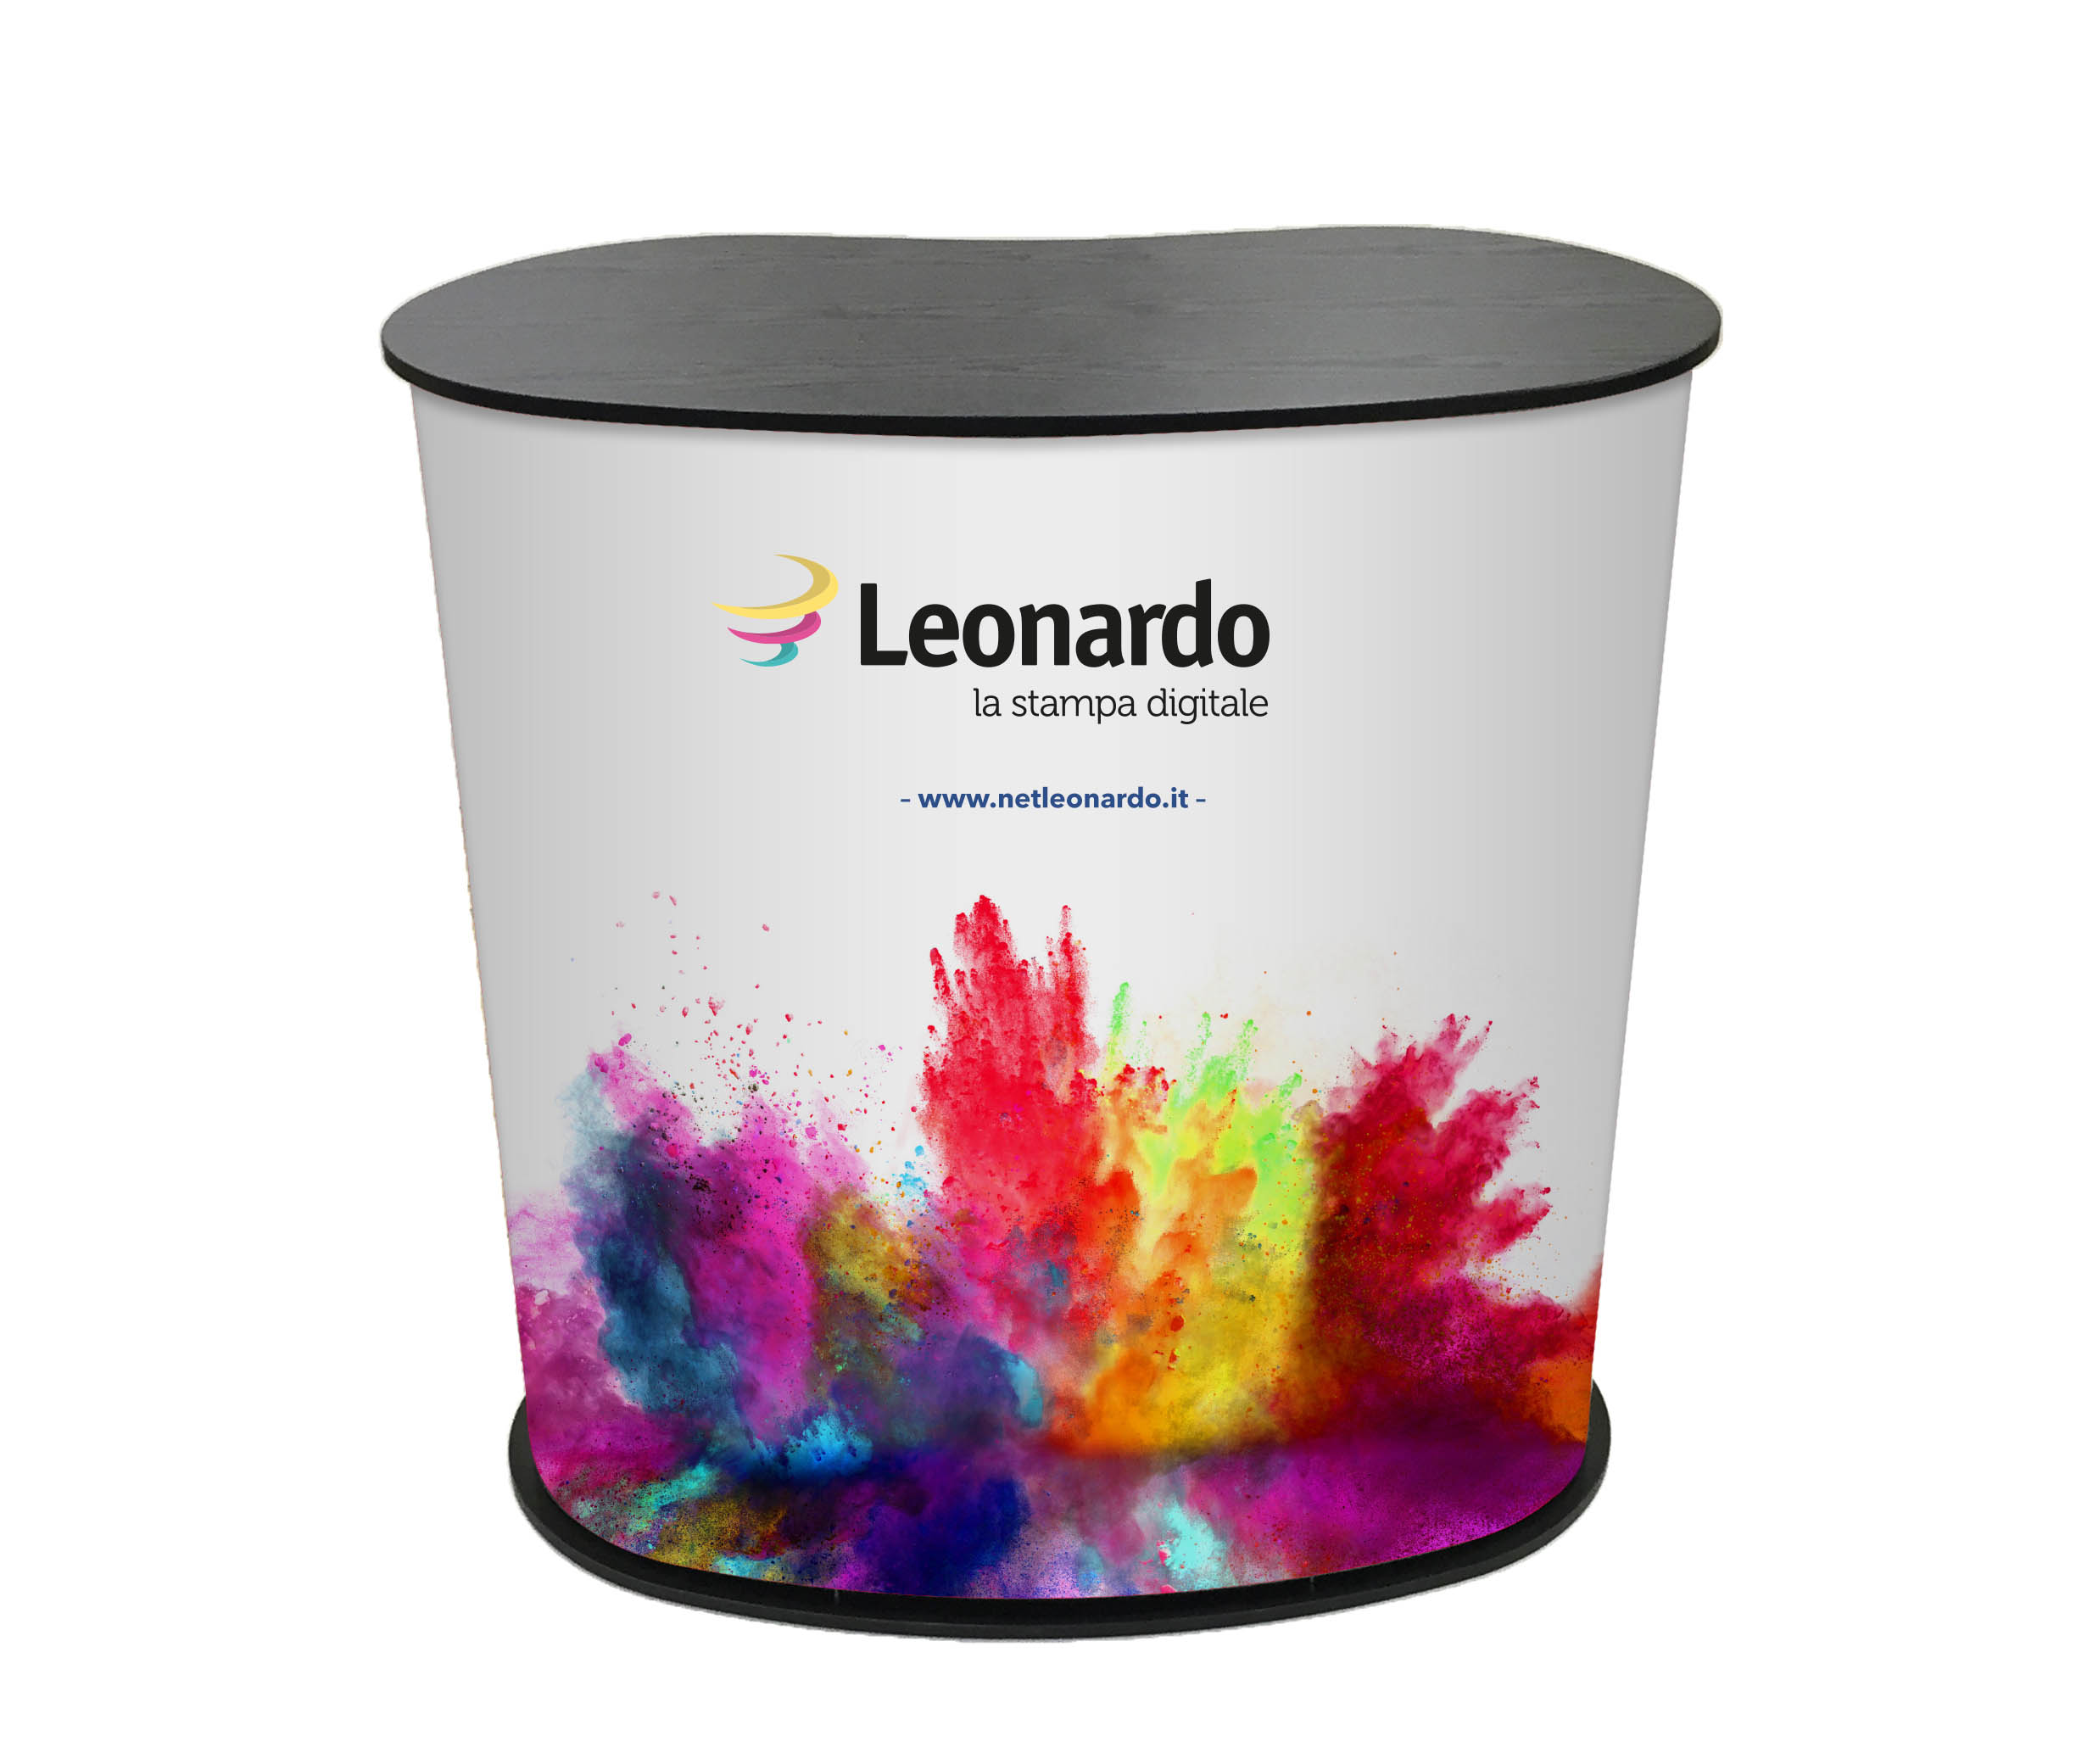 banchetto smart desck leonardo